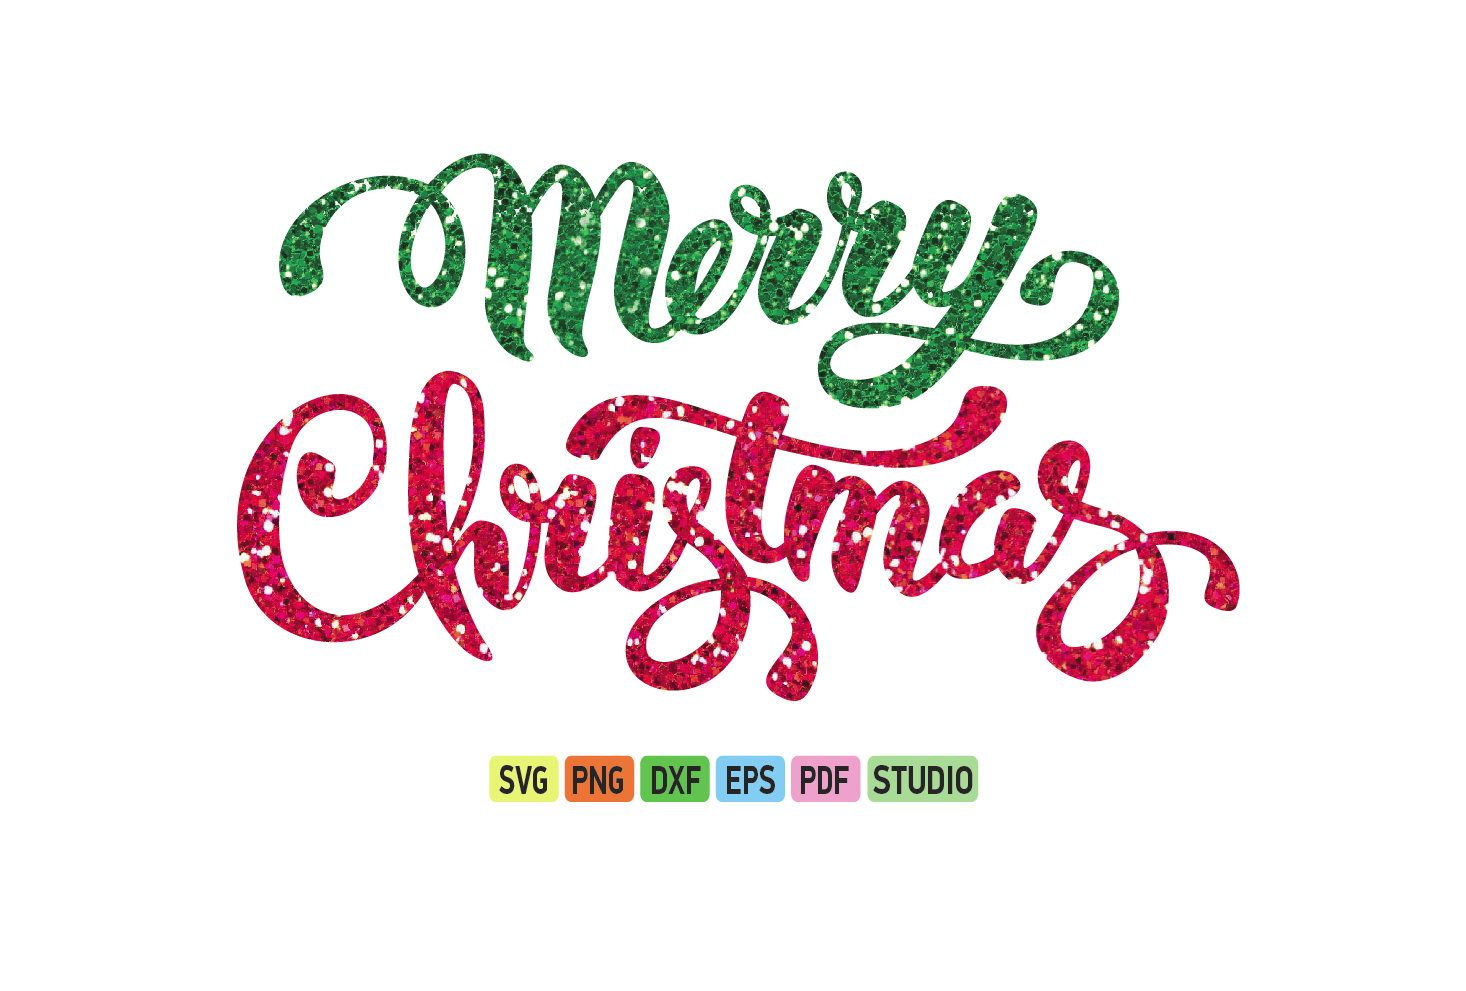 Merry christmas clipart file graphic download Merry Christmas Glitter SVG, Christmas SVG file, Christmas ... graphic download